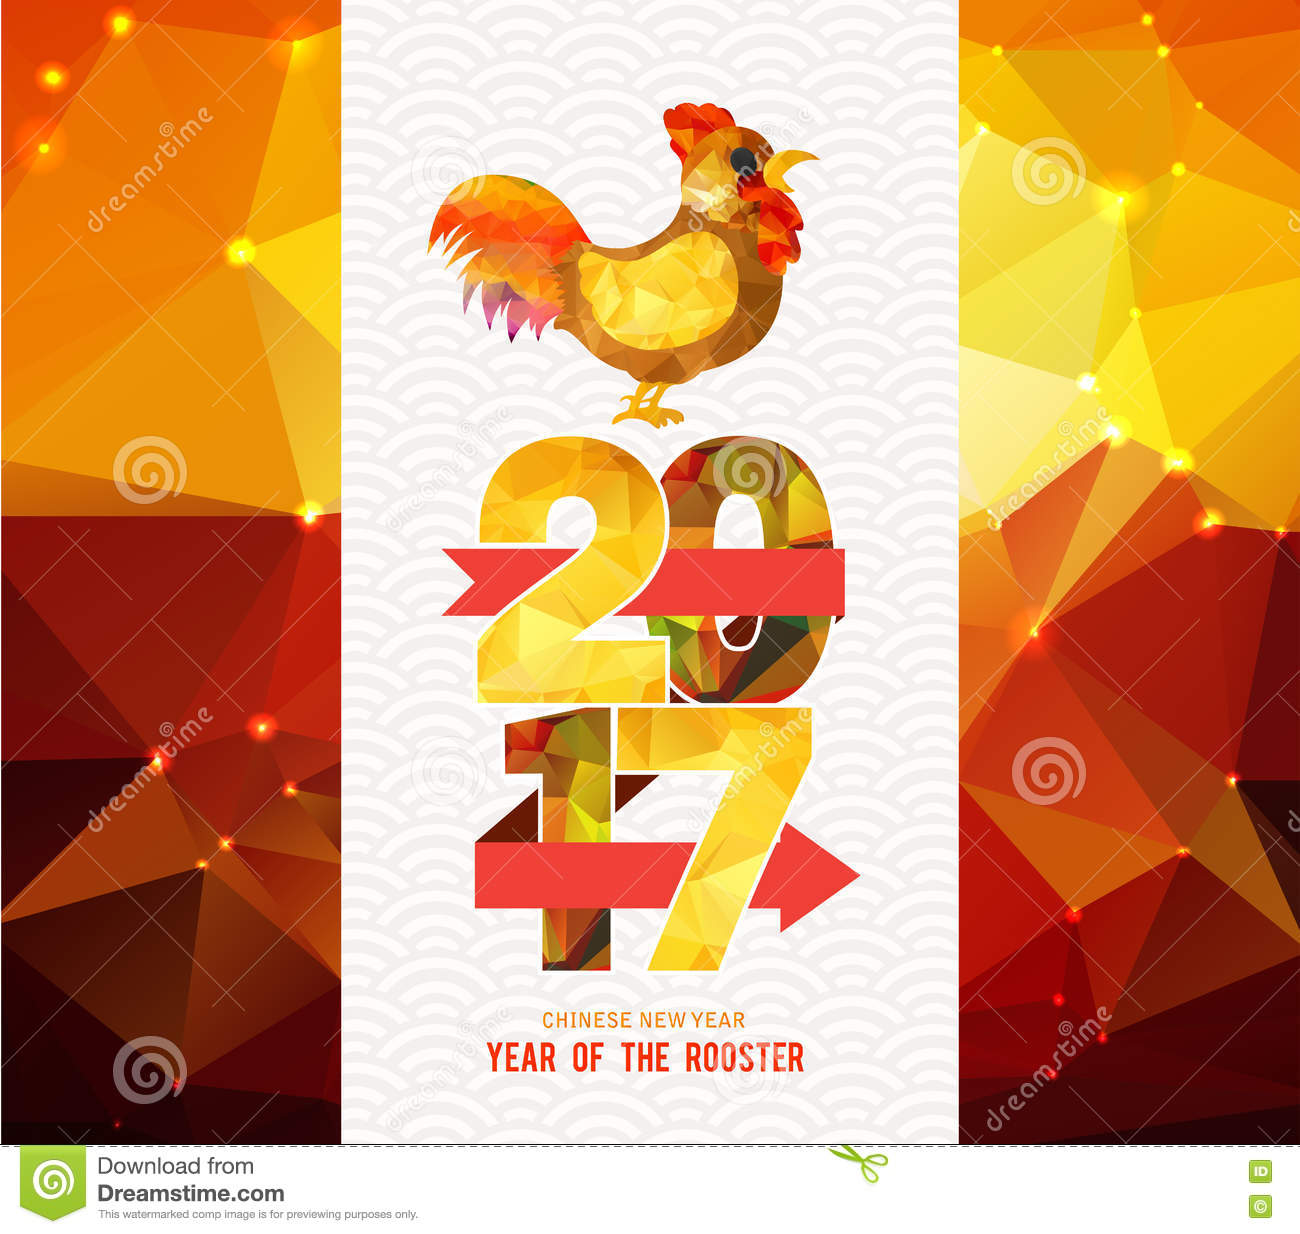 New year 2017 greeting pictures year of rooster happy chinese new year - Happy Chinese New Year 2017 Greeting Card Year Of The Rooster Stock Images